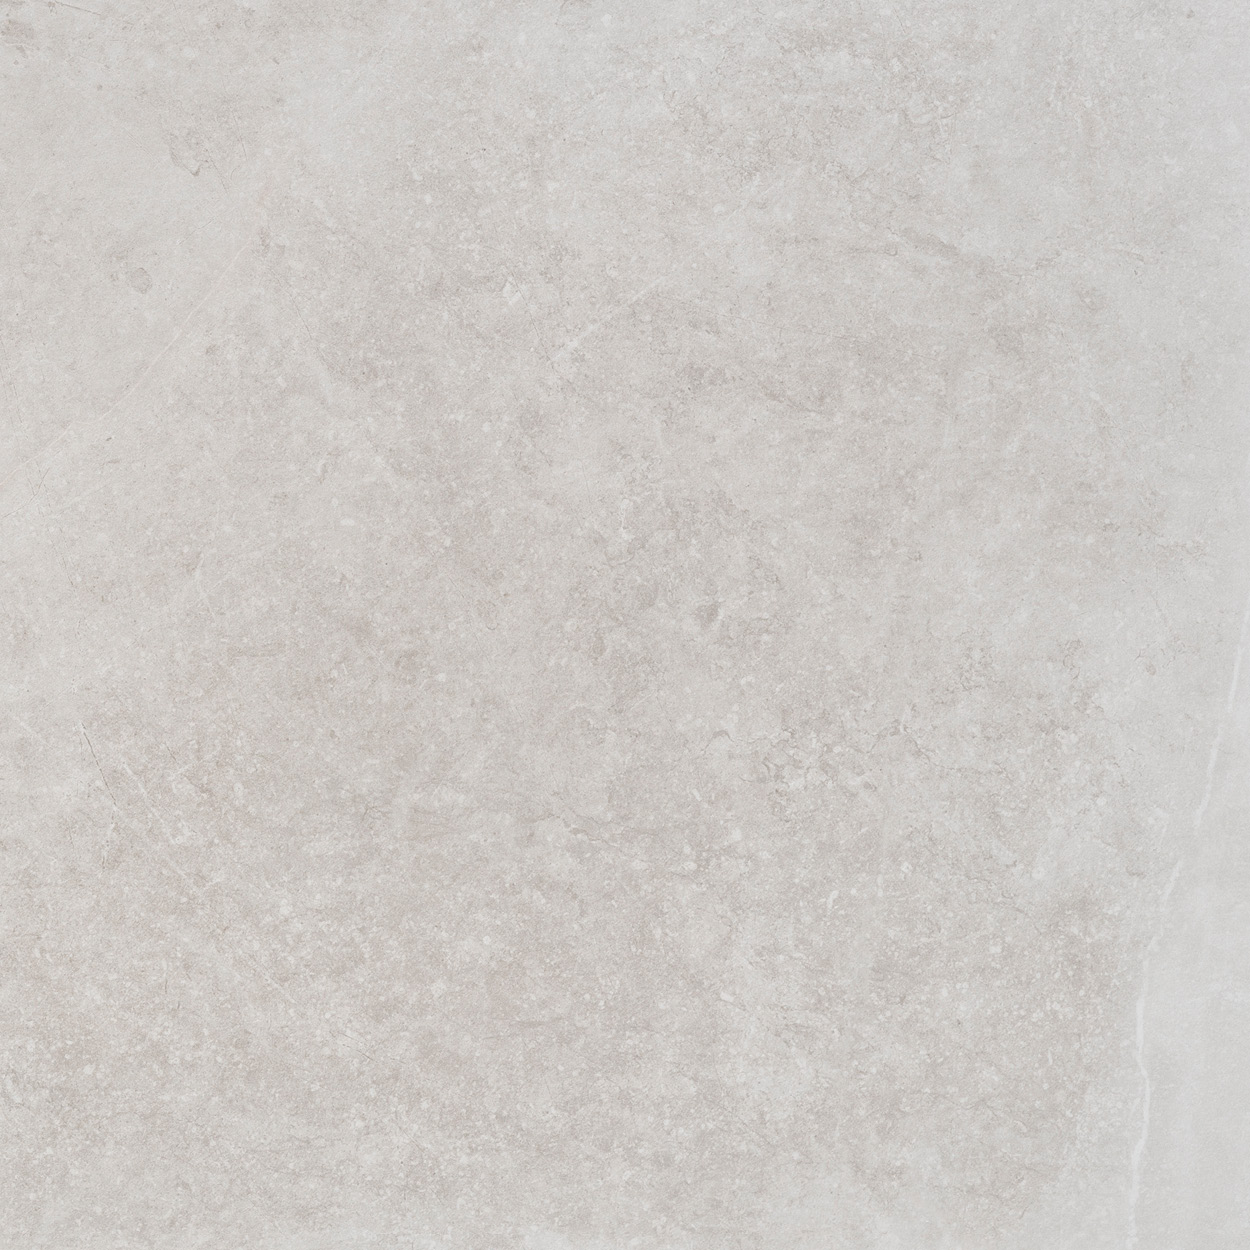 3 X 12 Evo Stone Ivory Honed finished Rectified Porcelain Tile